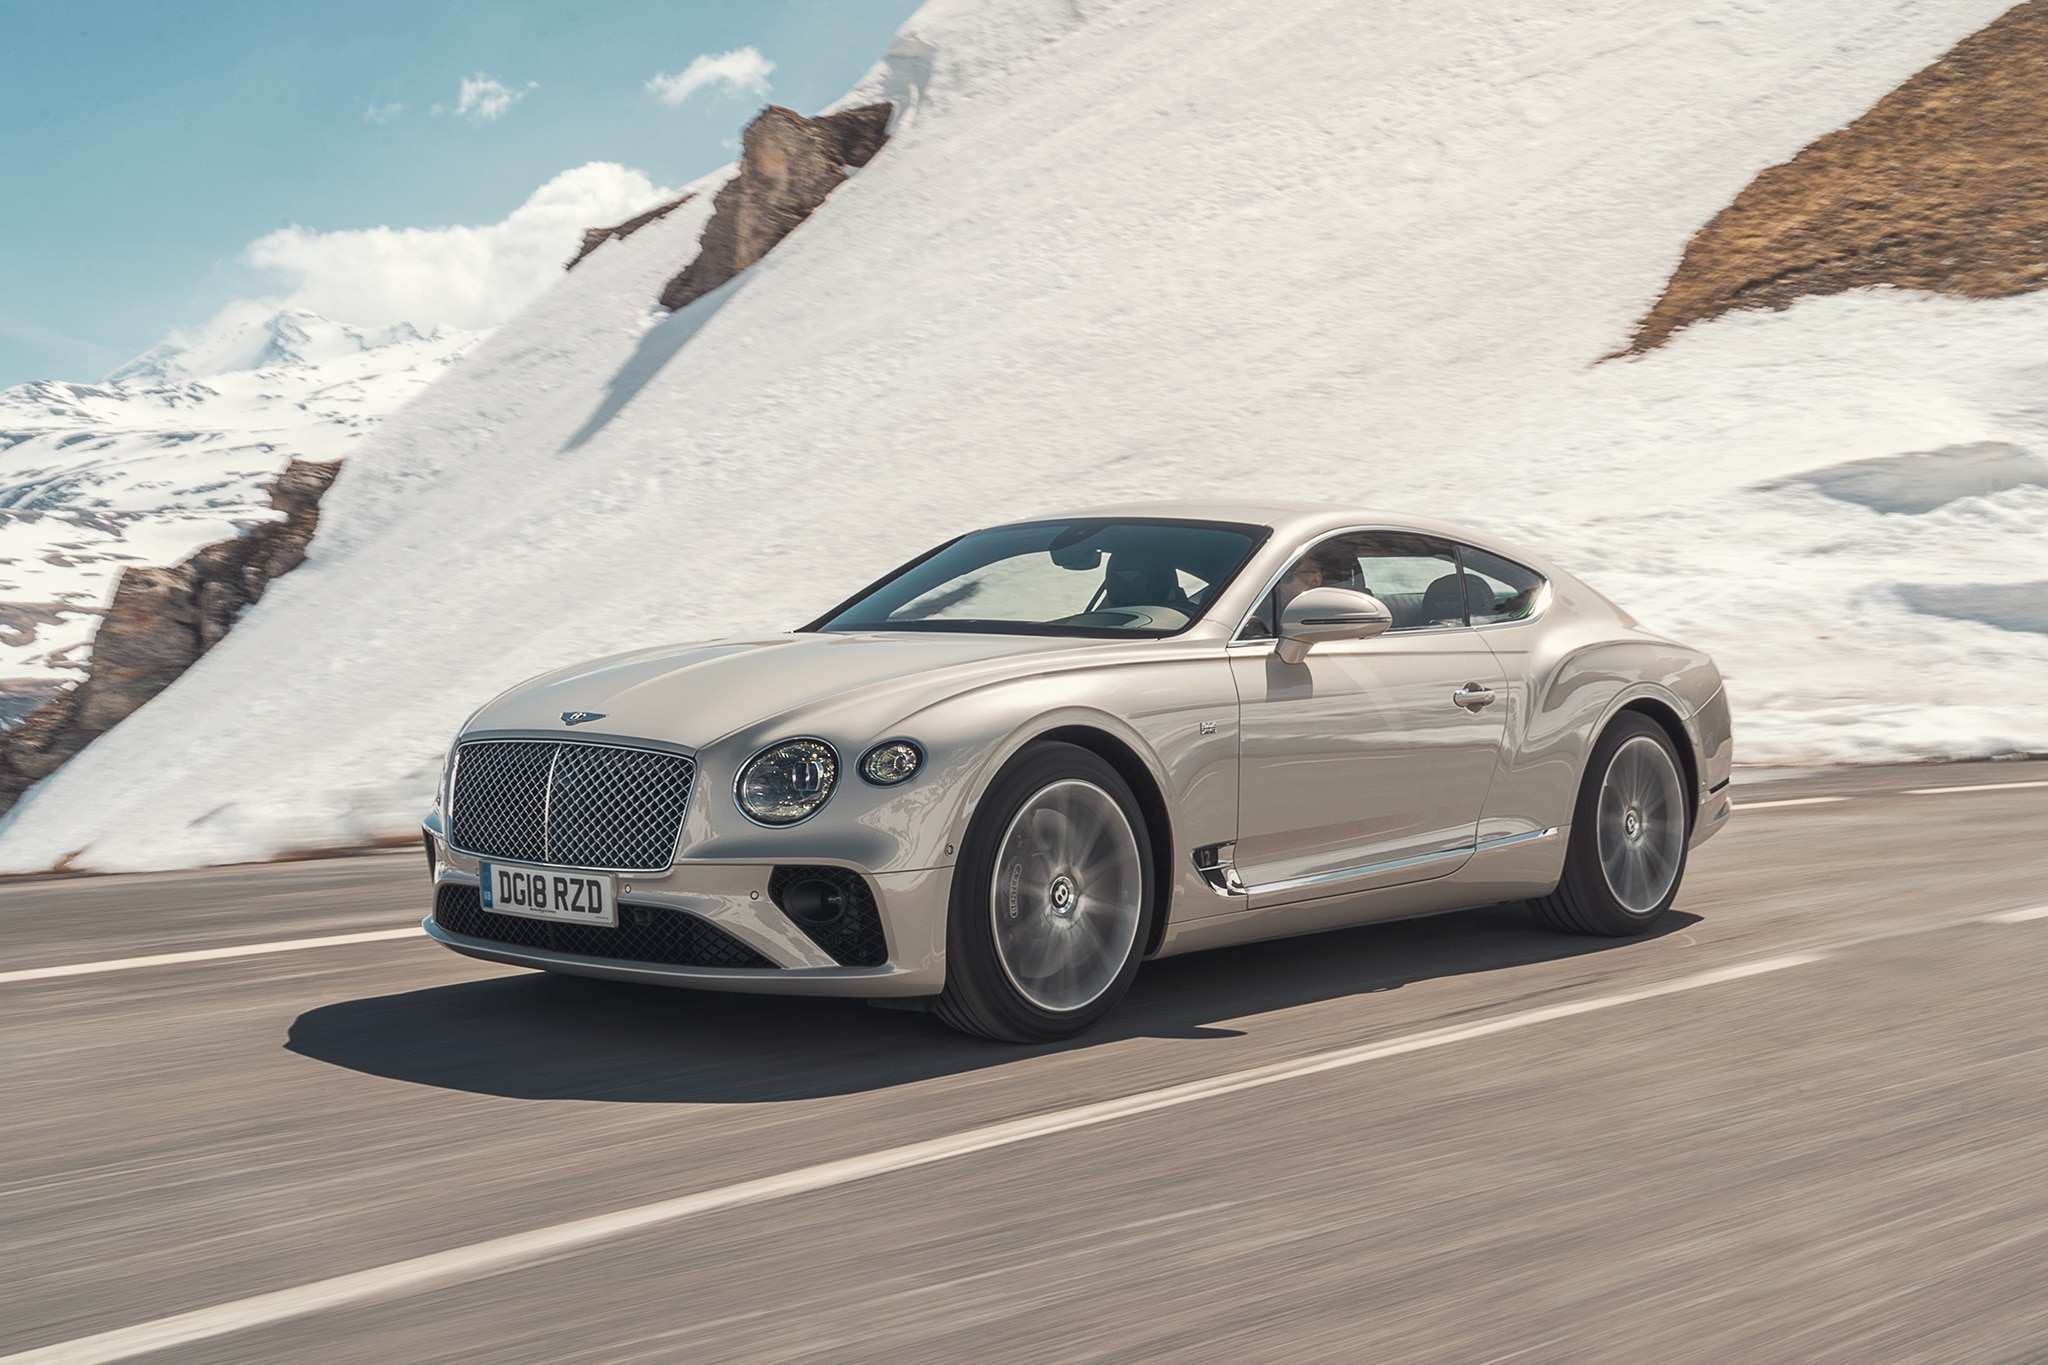 26 Concept of 2019 Bentley Gt Redesign and Concept by 2019 Bentley Gt